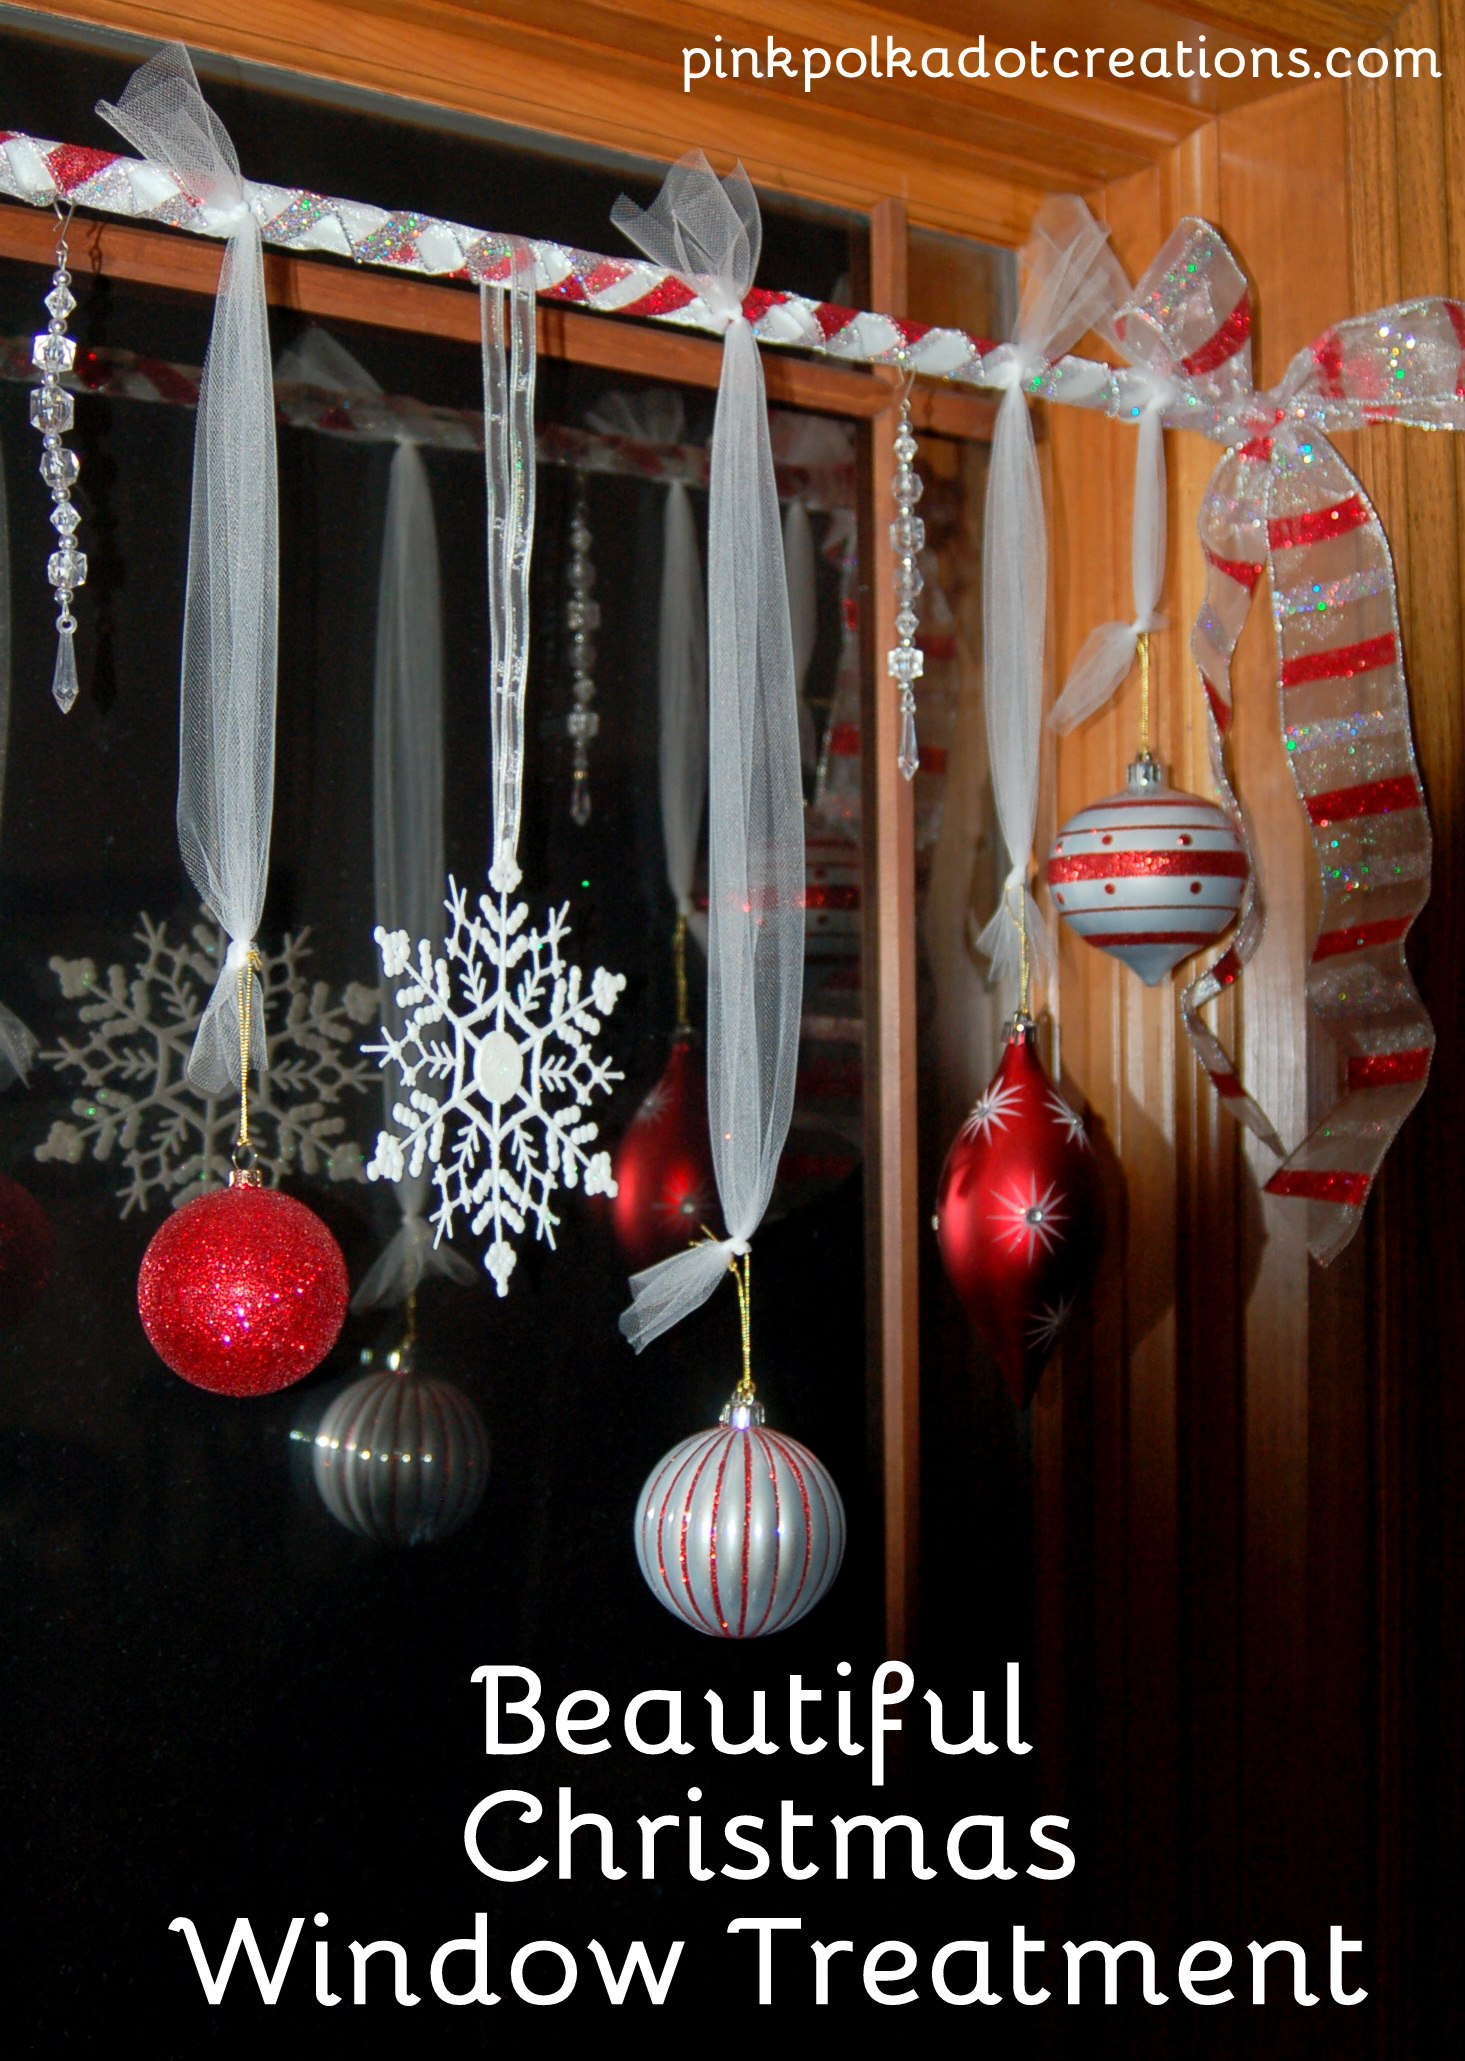 Christmas window treatments pink polka dot creations for Christmas decoration for inside the house